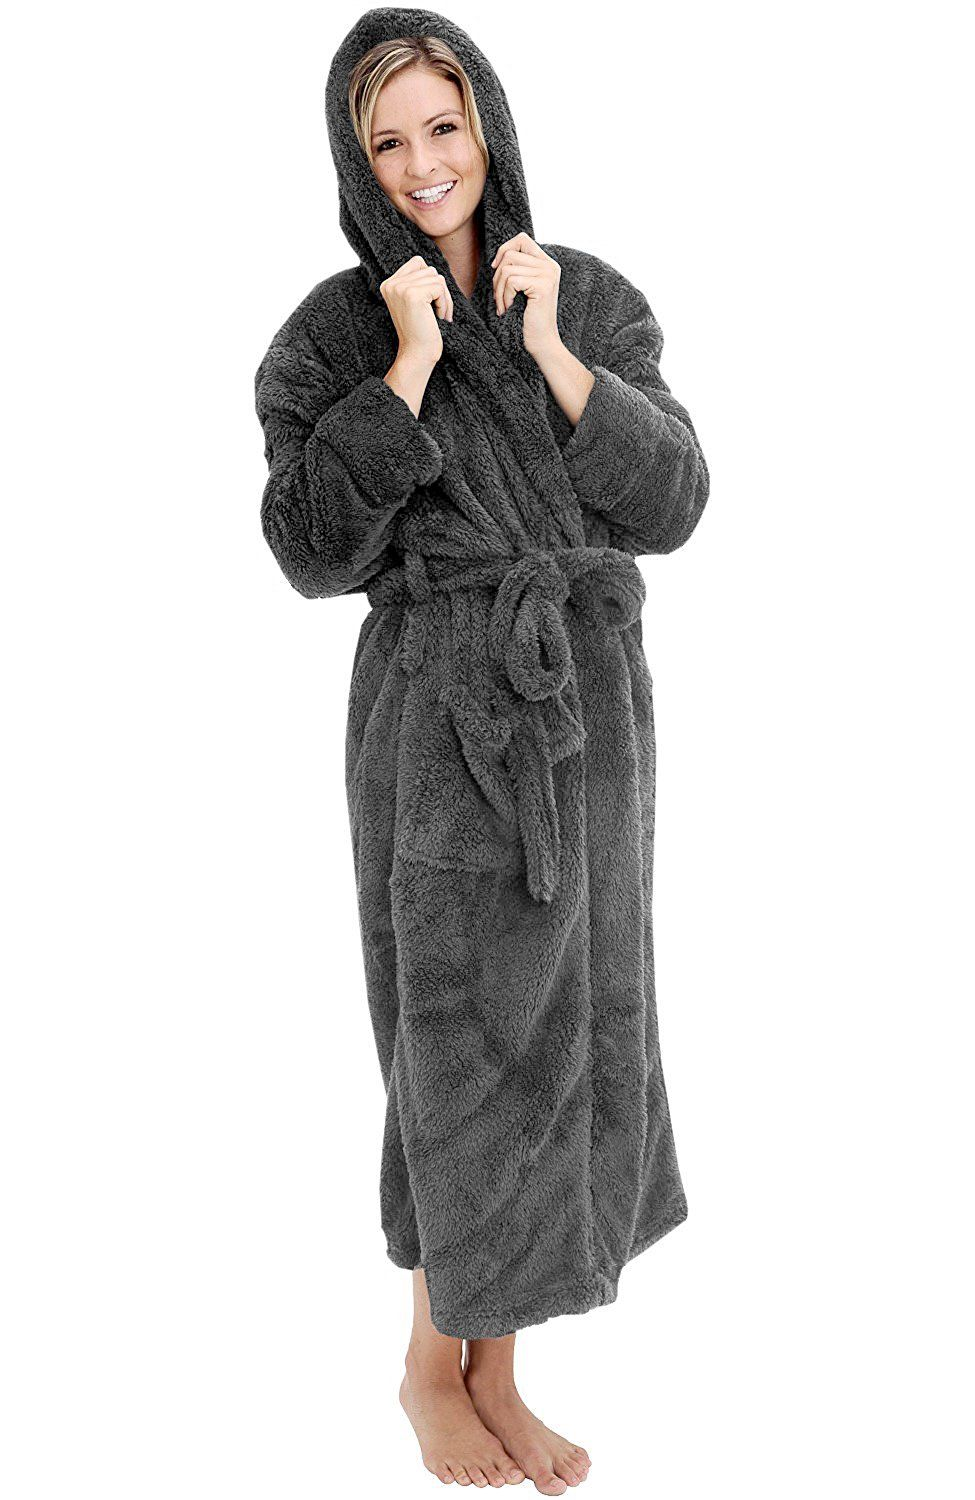 8348ec7eb8 Alexander Del Rossa Womens Fleece Robe